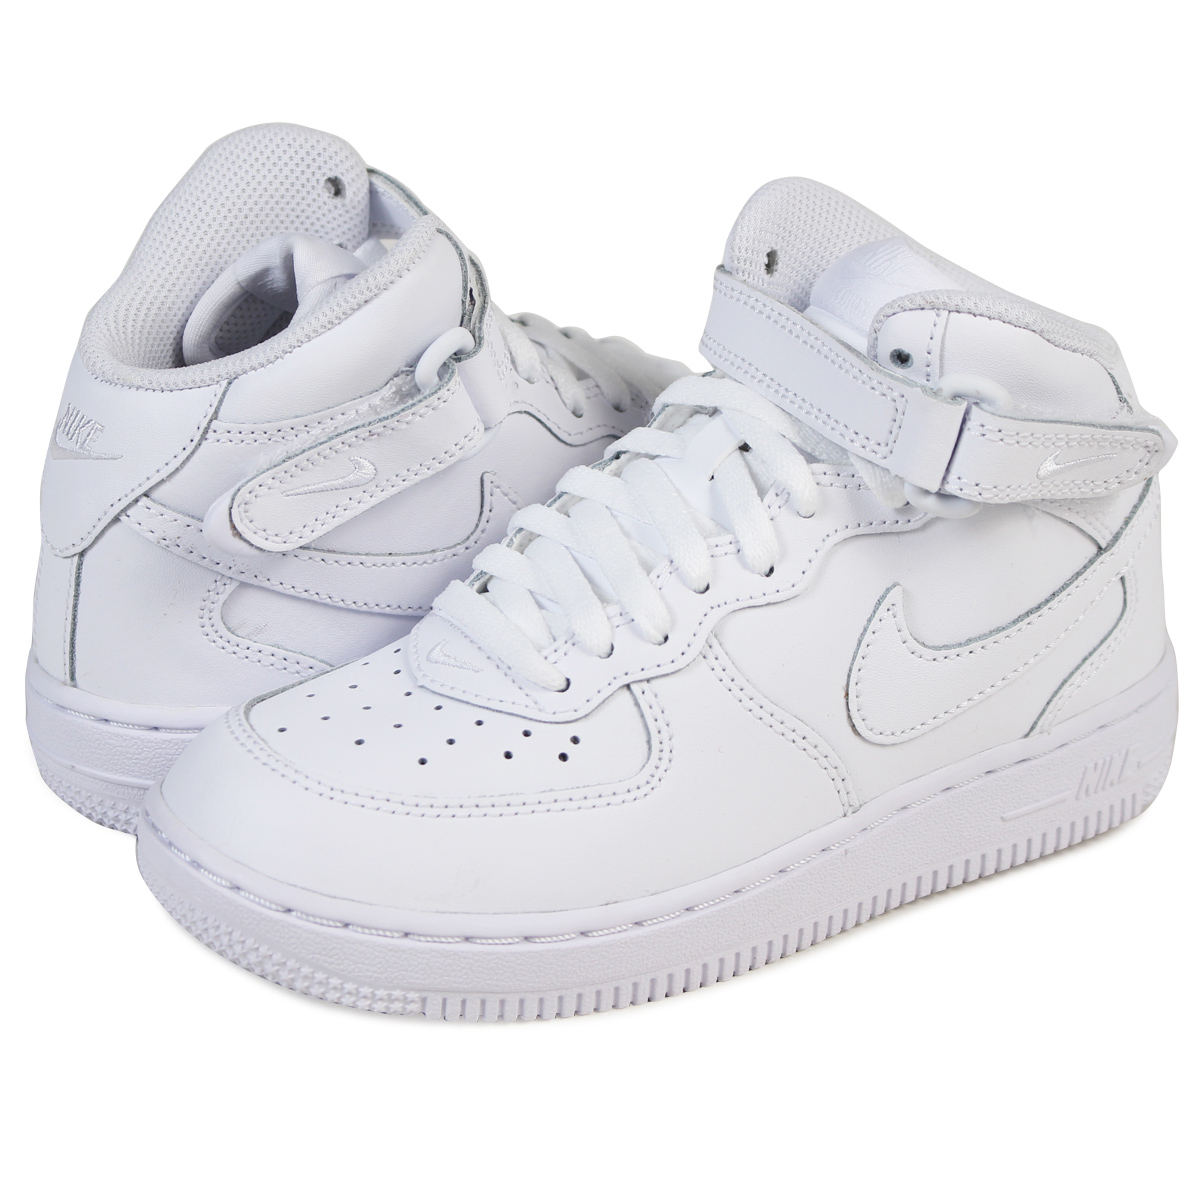 buy popular dfcbd eb25a SOLD OUT Nike NIKE kids  AIR FORCE 1 MID PS sneakers air force 1 mid  preschool leather junior kids PRESCHOOL 314196-113 white